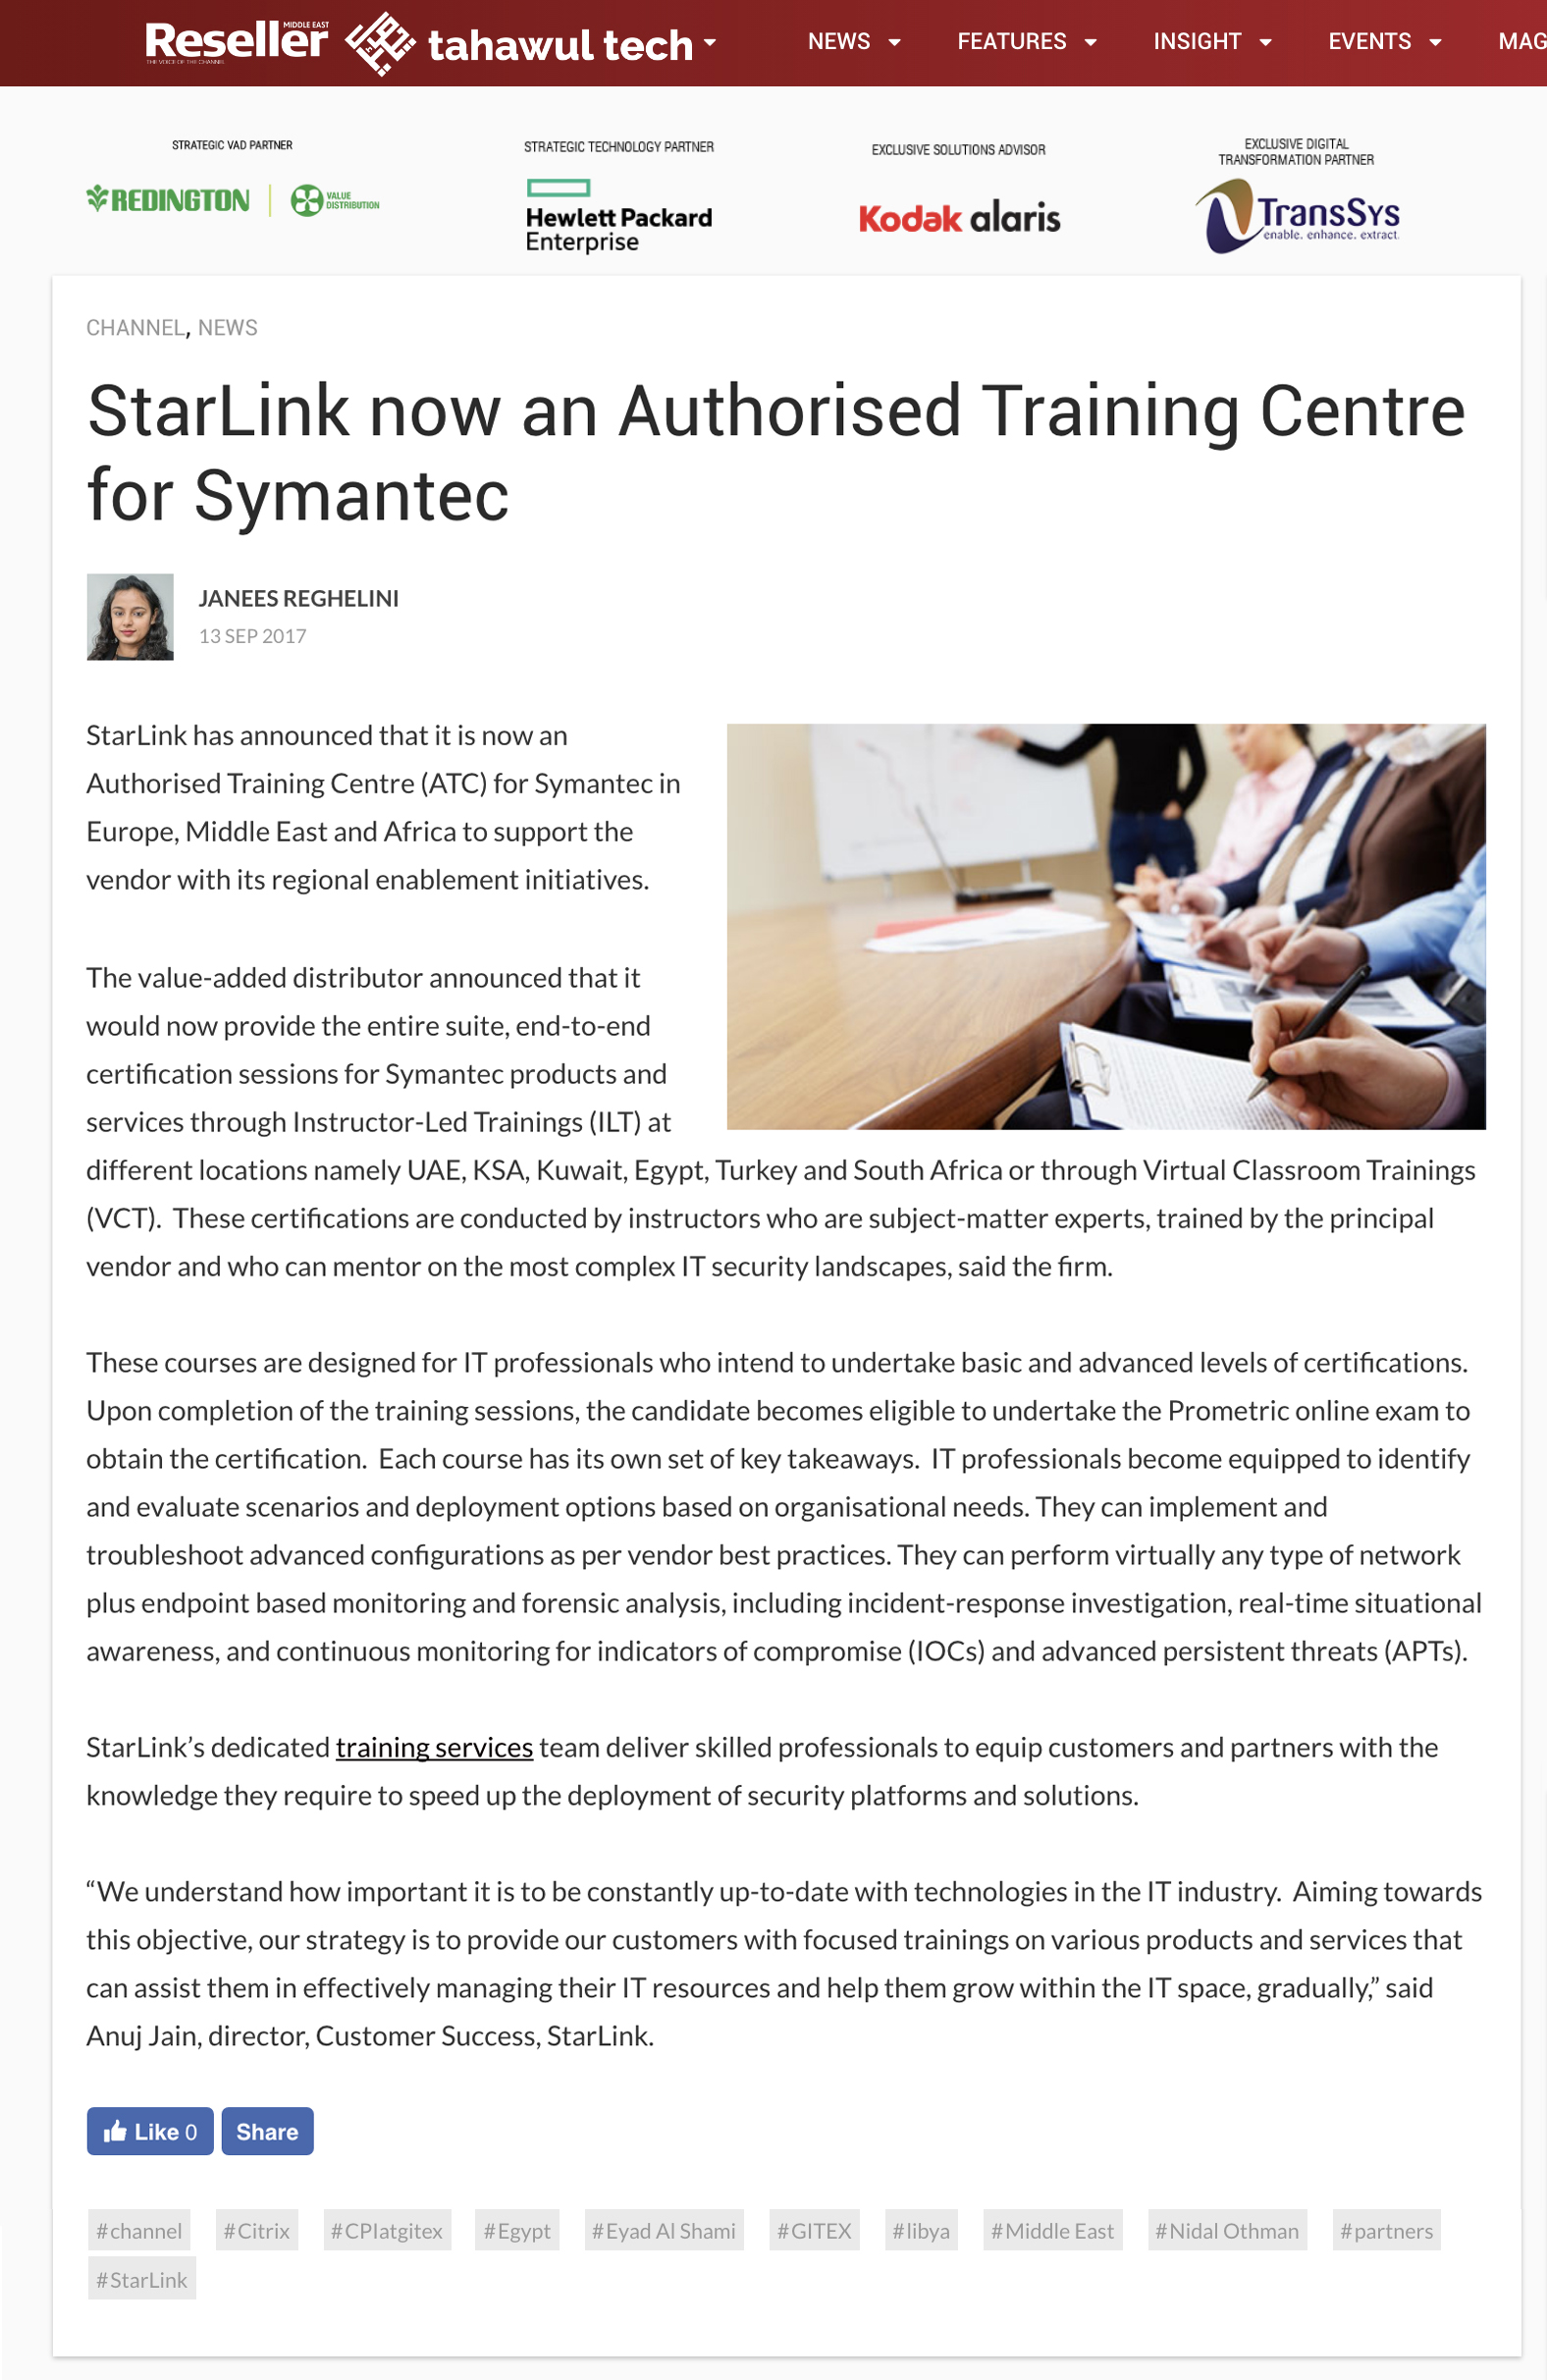 Starlink Press Starlink Authorized Training Centre For Symantec